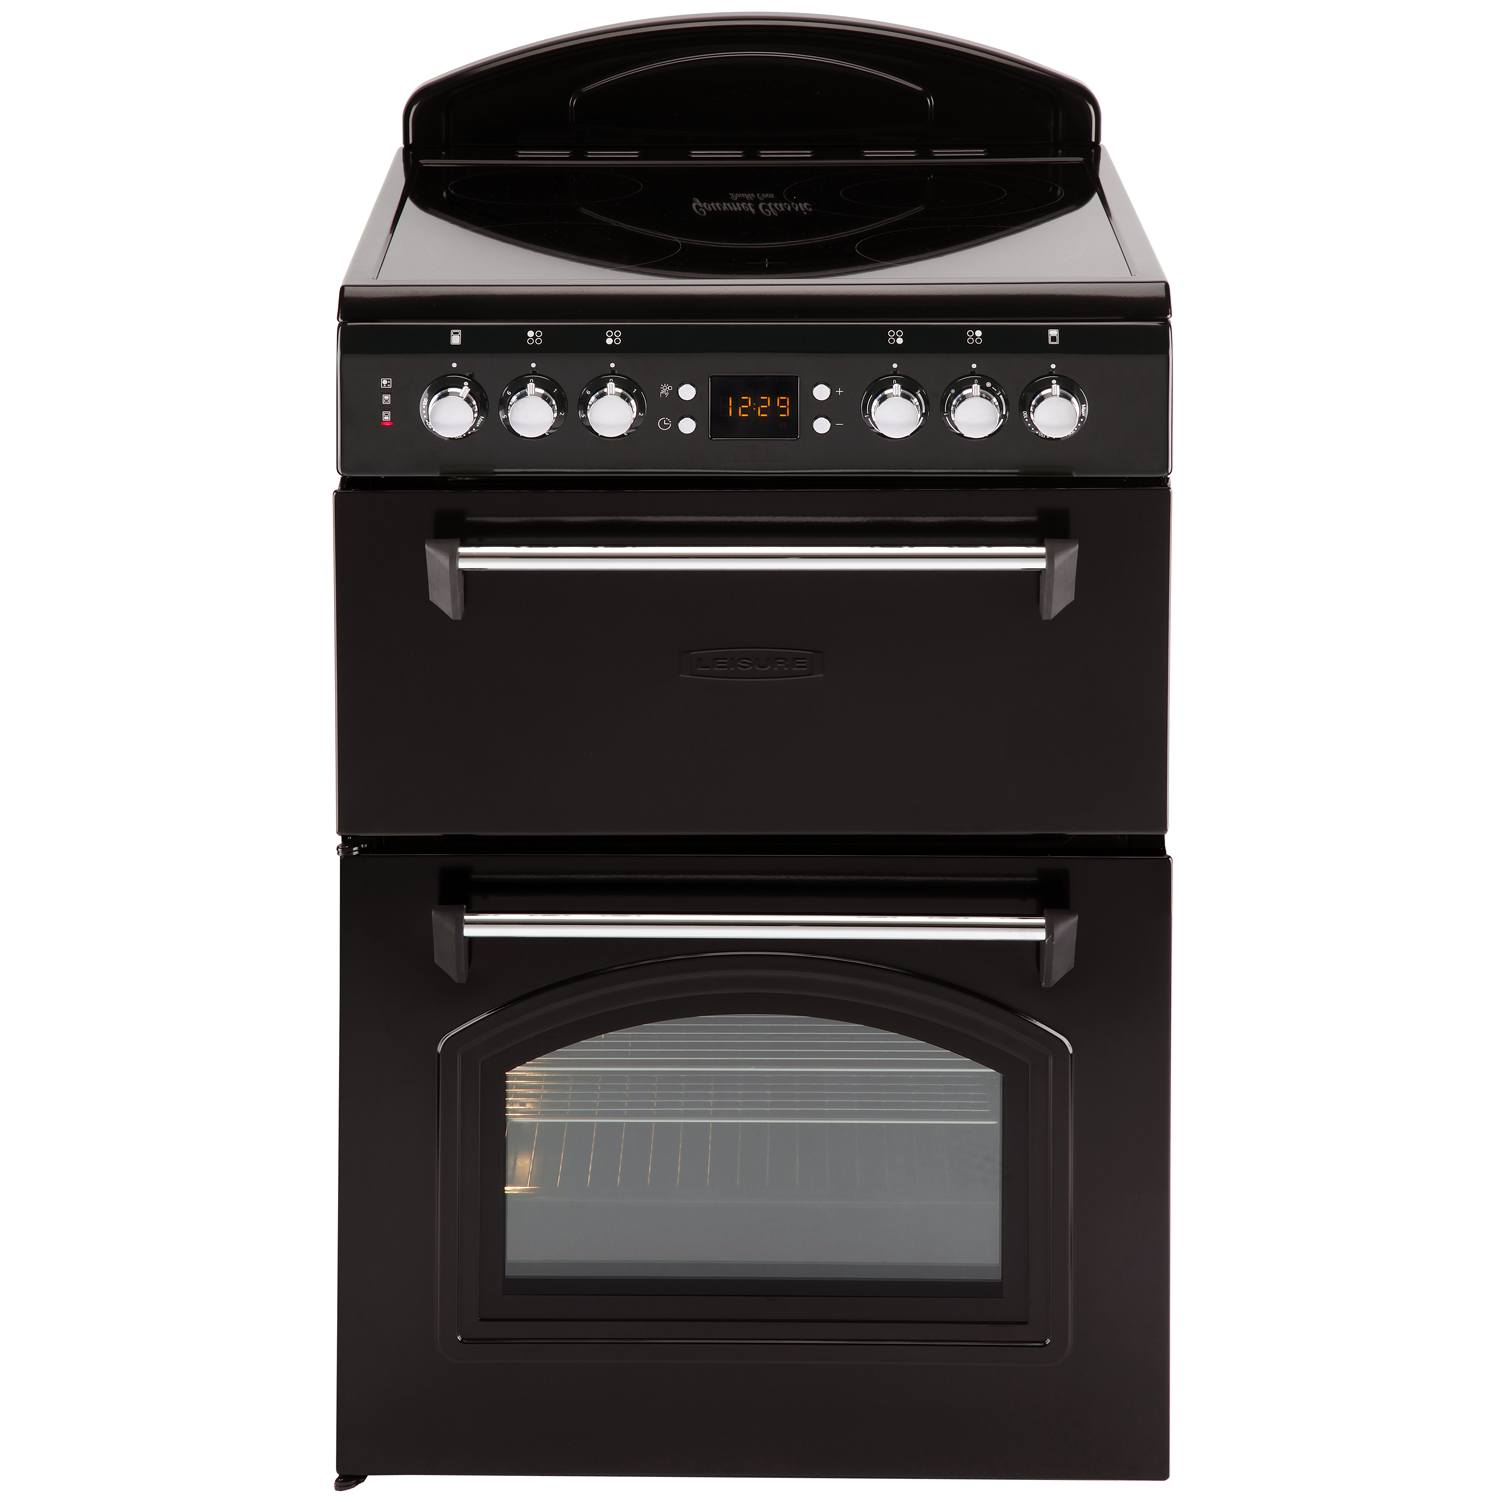 Leisure Cla60cek 60cm Classic Mini Range Cooker With 4